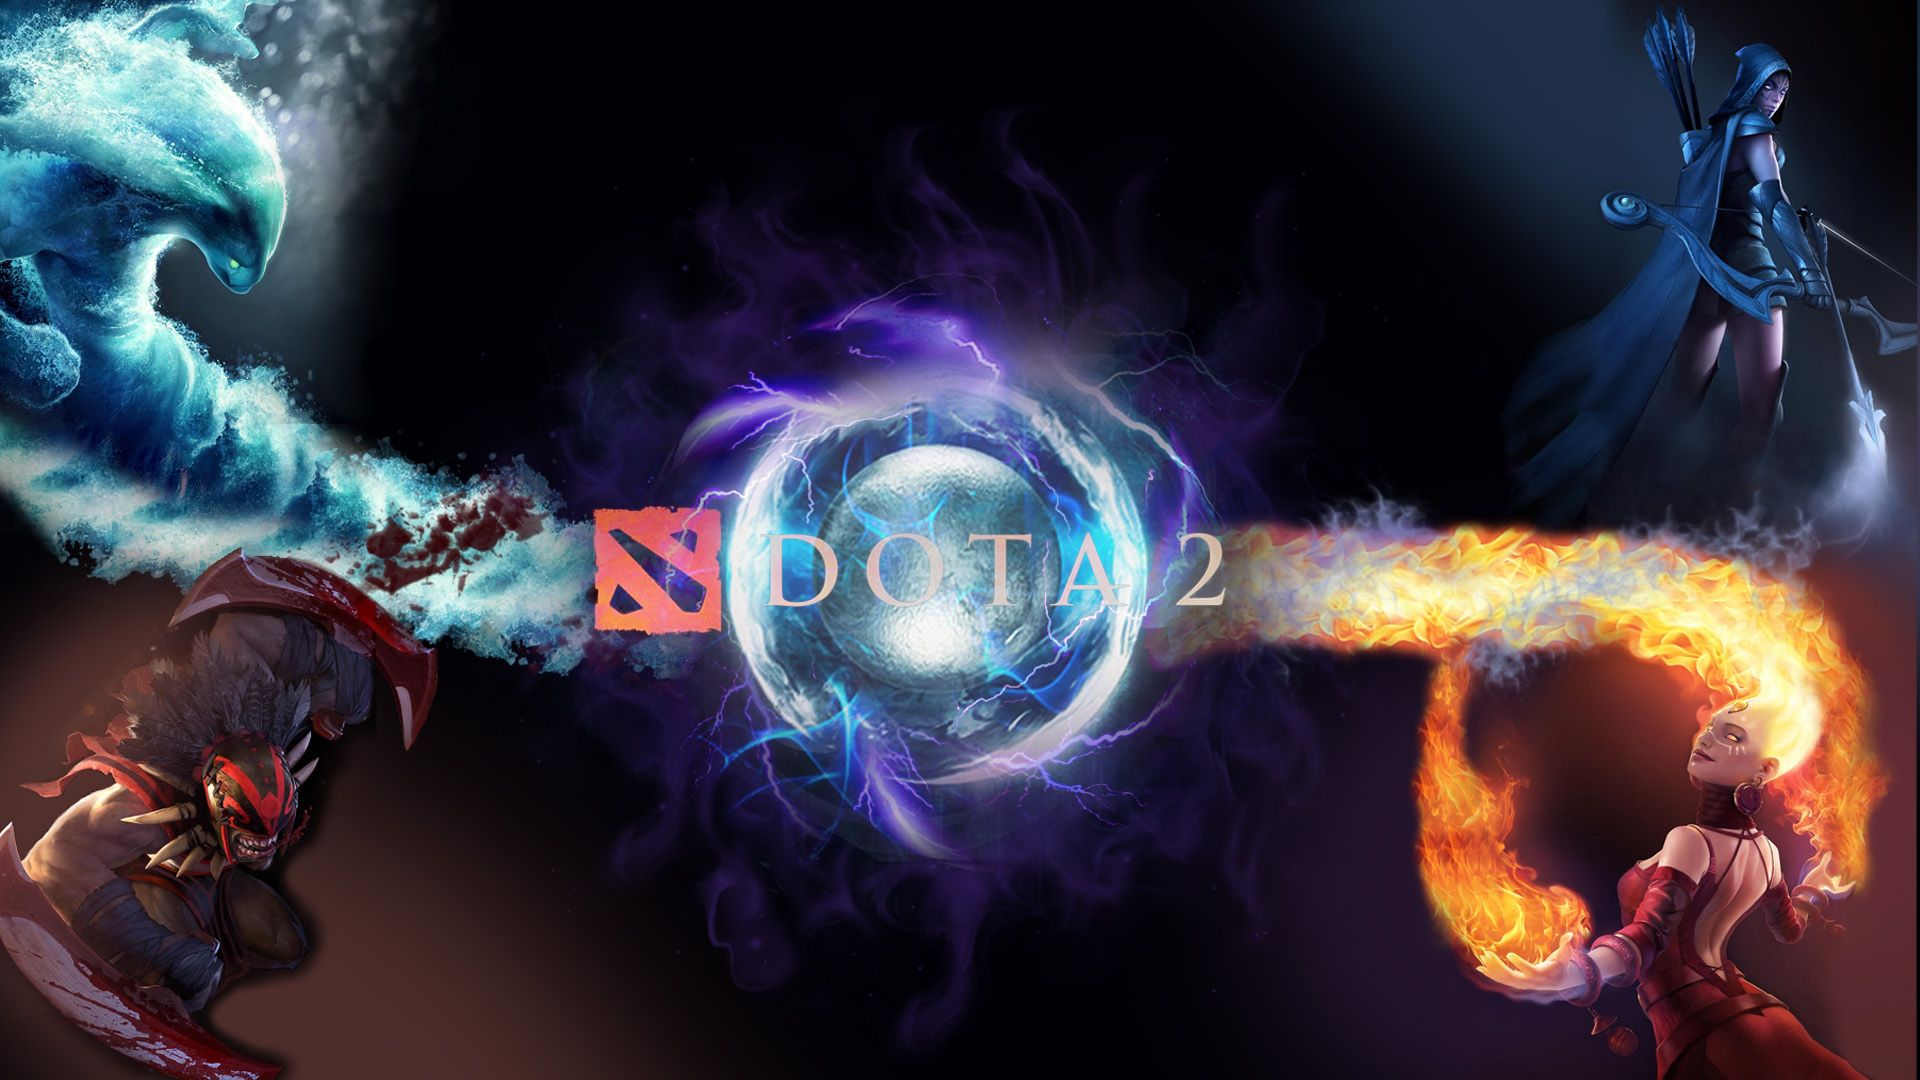 dota wallpapers album on imgur 1920 1080 dota 2 wallpapers 40